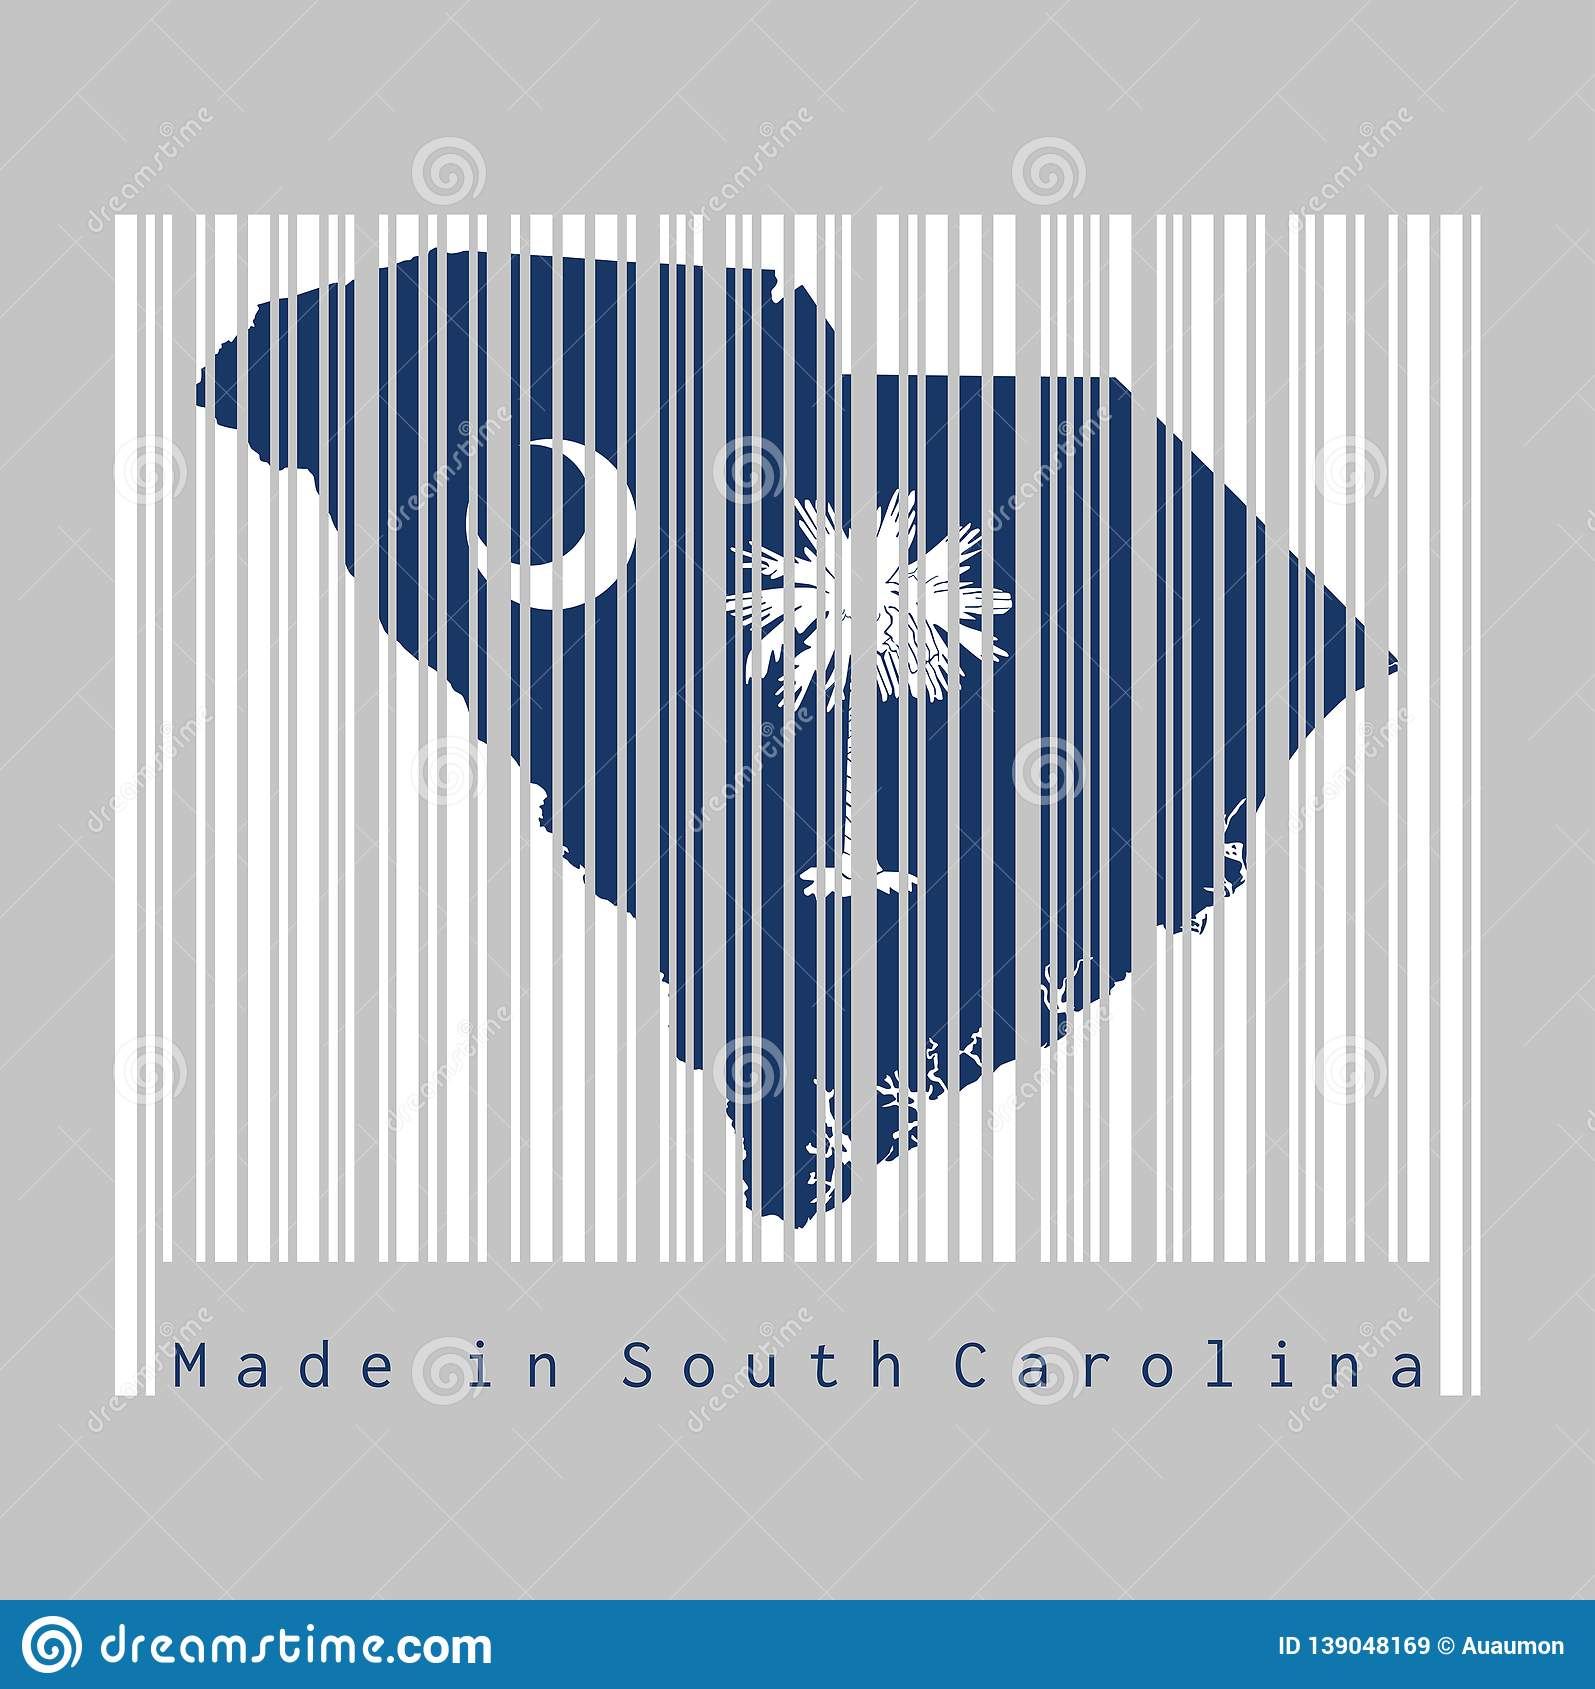 Barcode Set The Shape To South Carolina Map Outline And The Color Of